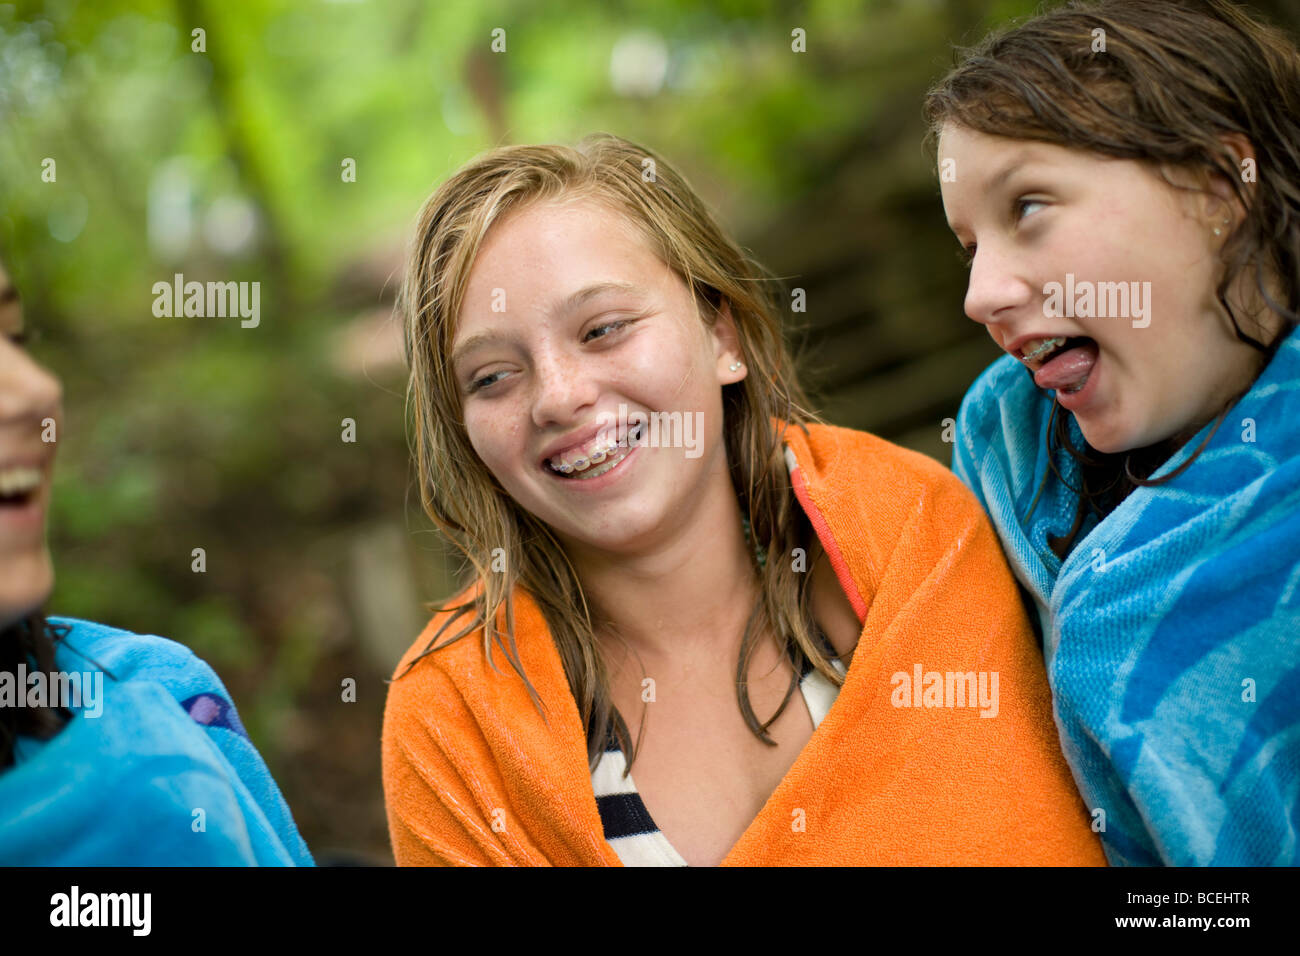 Teenage girls are laughing and having fun while wrapped up in beach towels - Stock Image